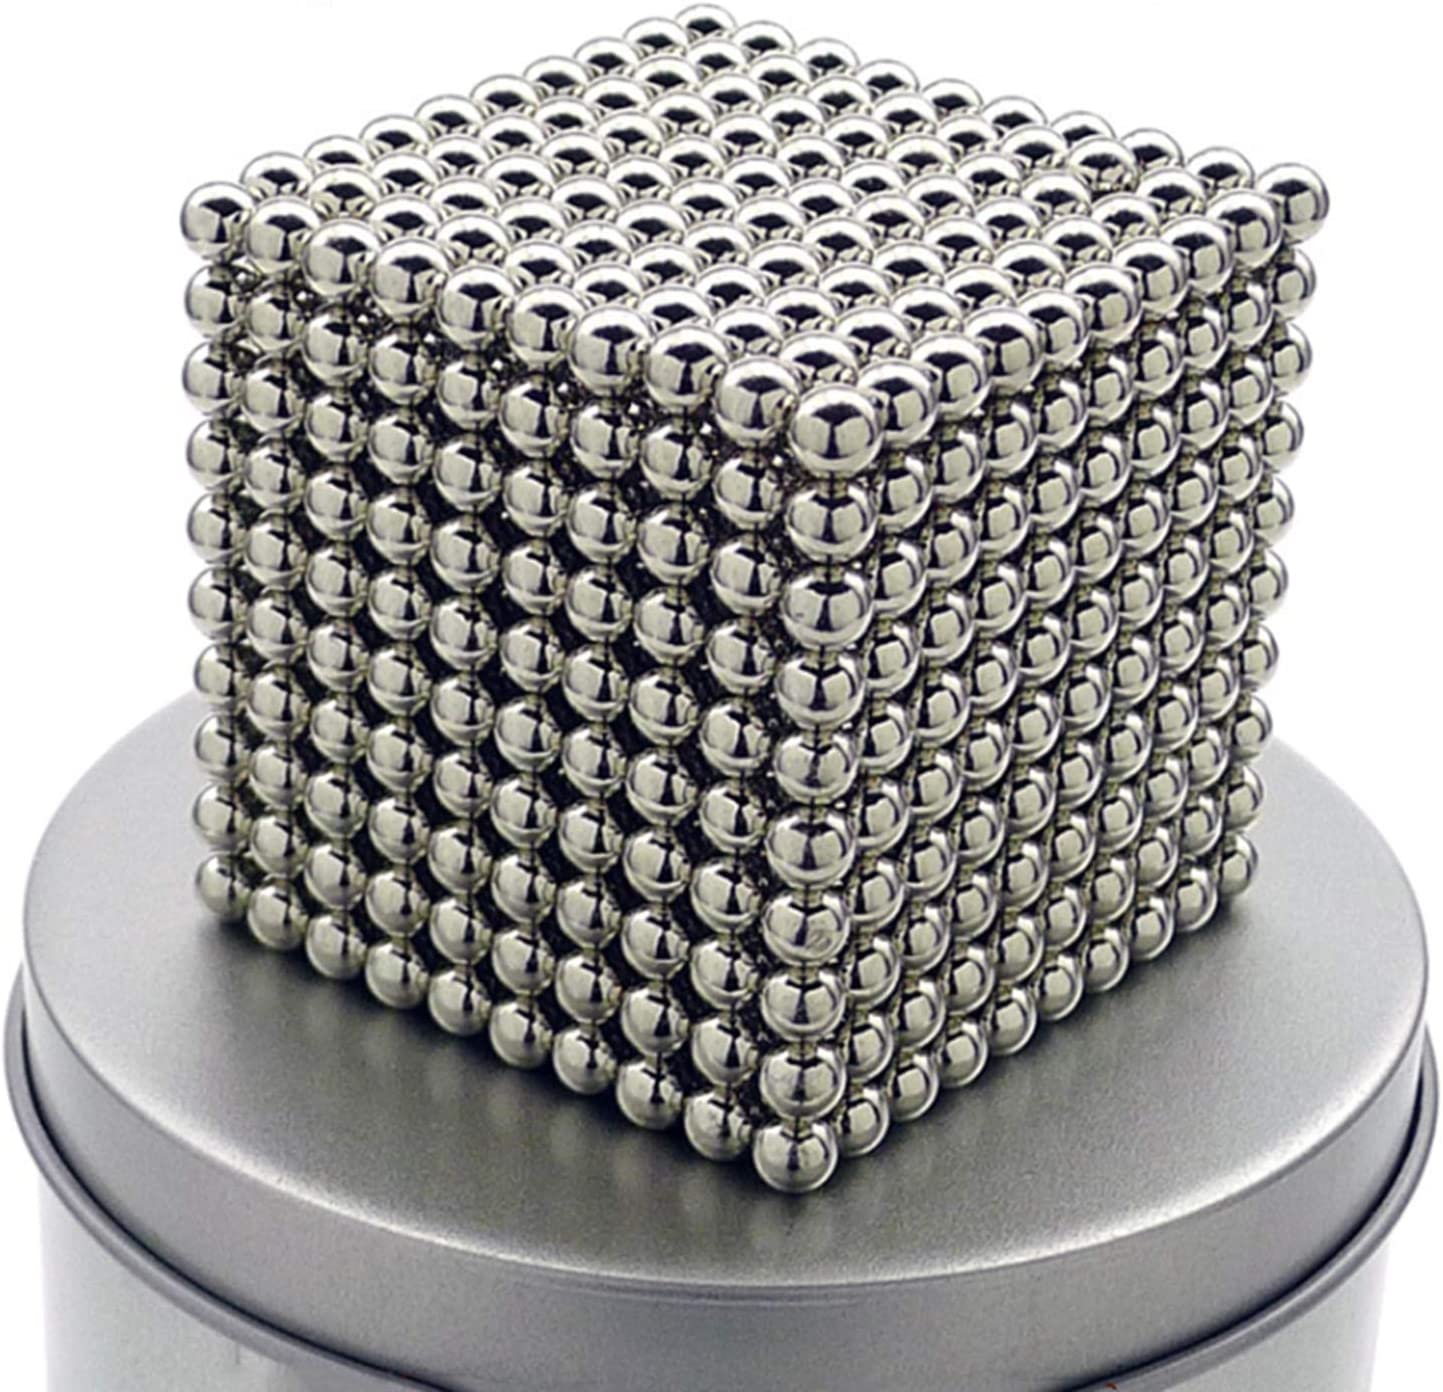 RQW Magnet Balls Multicolored 1000 Pieces 3 MM Powerful Creative Rainbow Cube Tactile Office Desktop Toys Sculpture Entertainment Stress Relief (Silver)